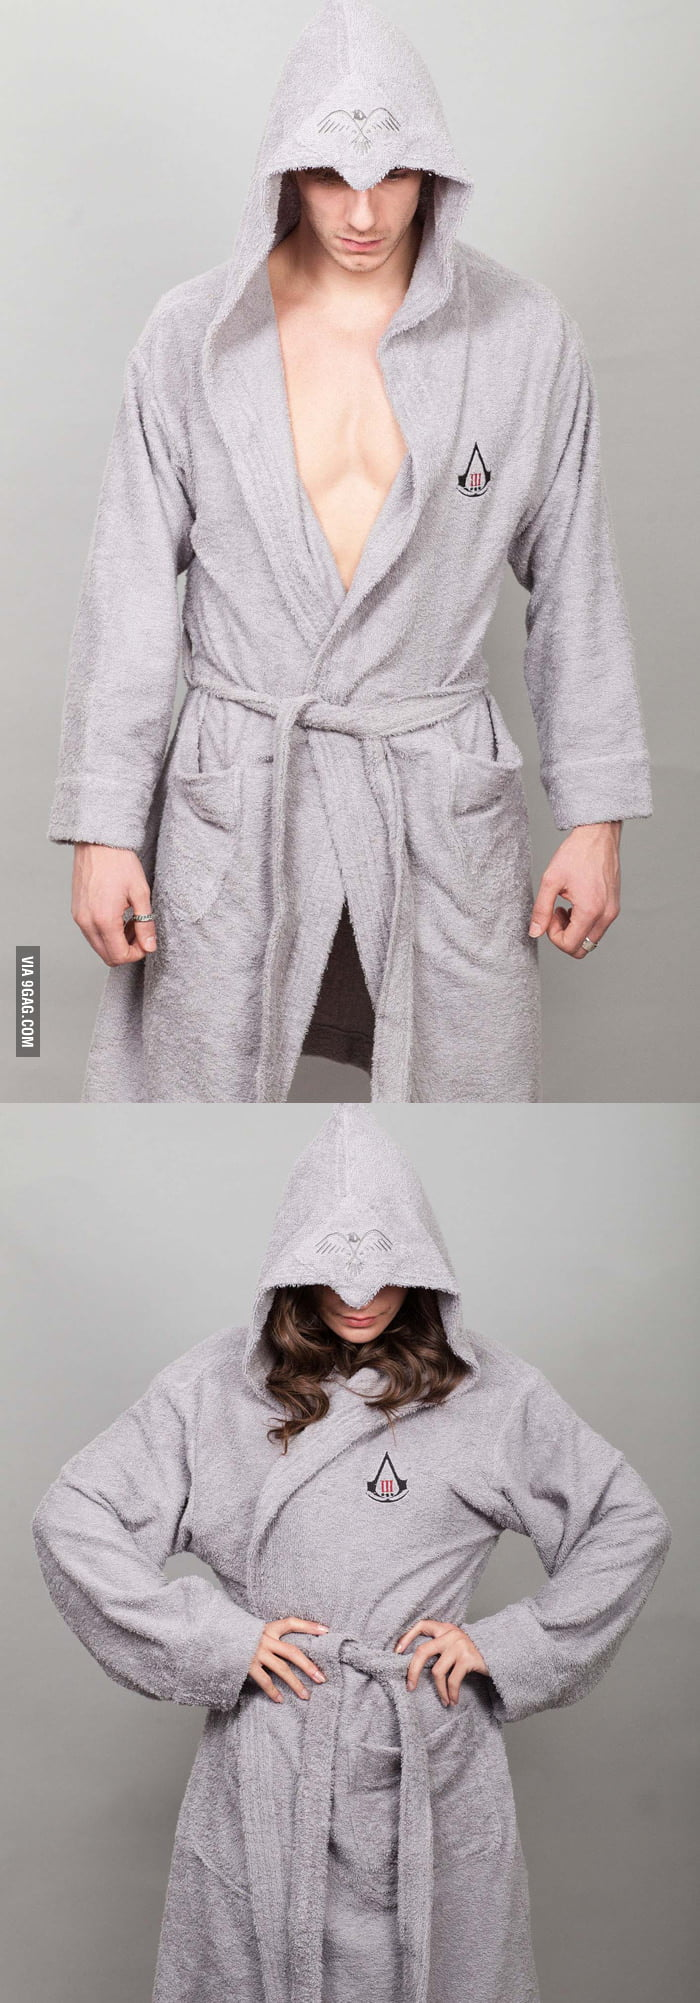 Assassin Bathrobe